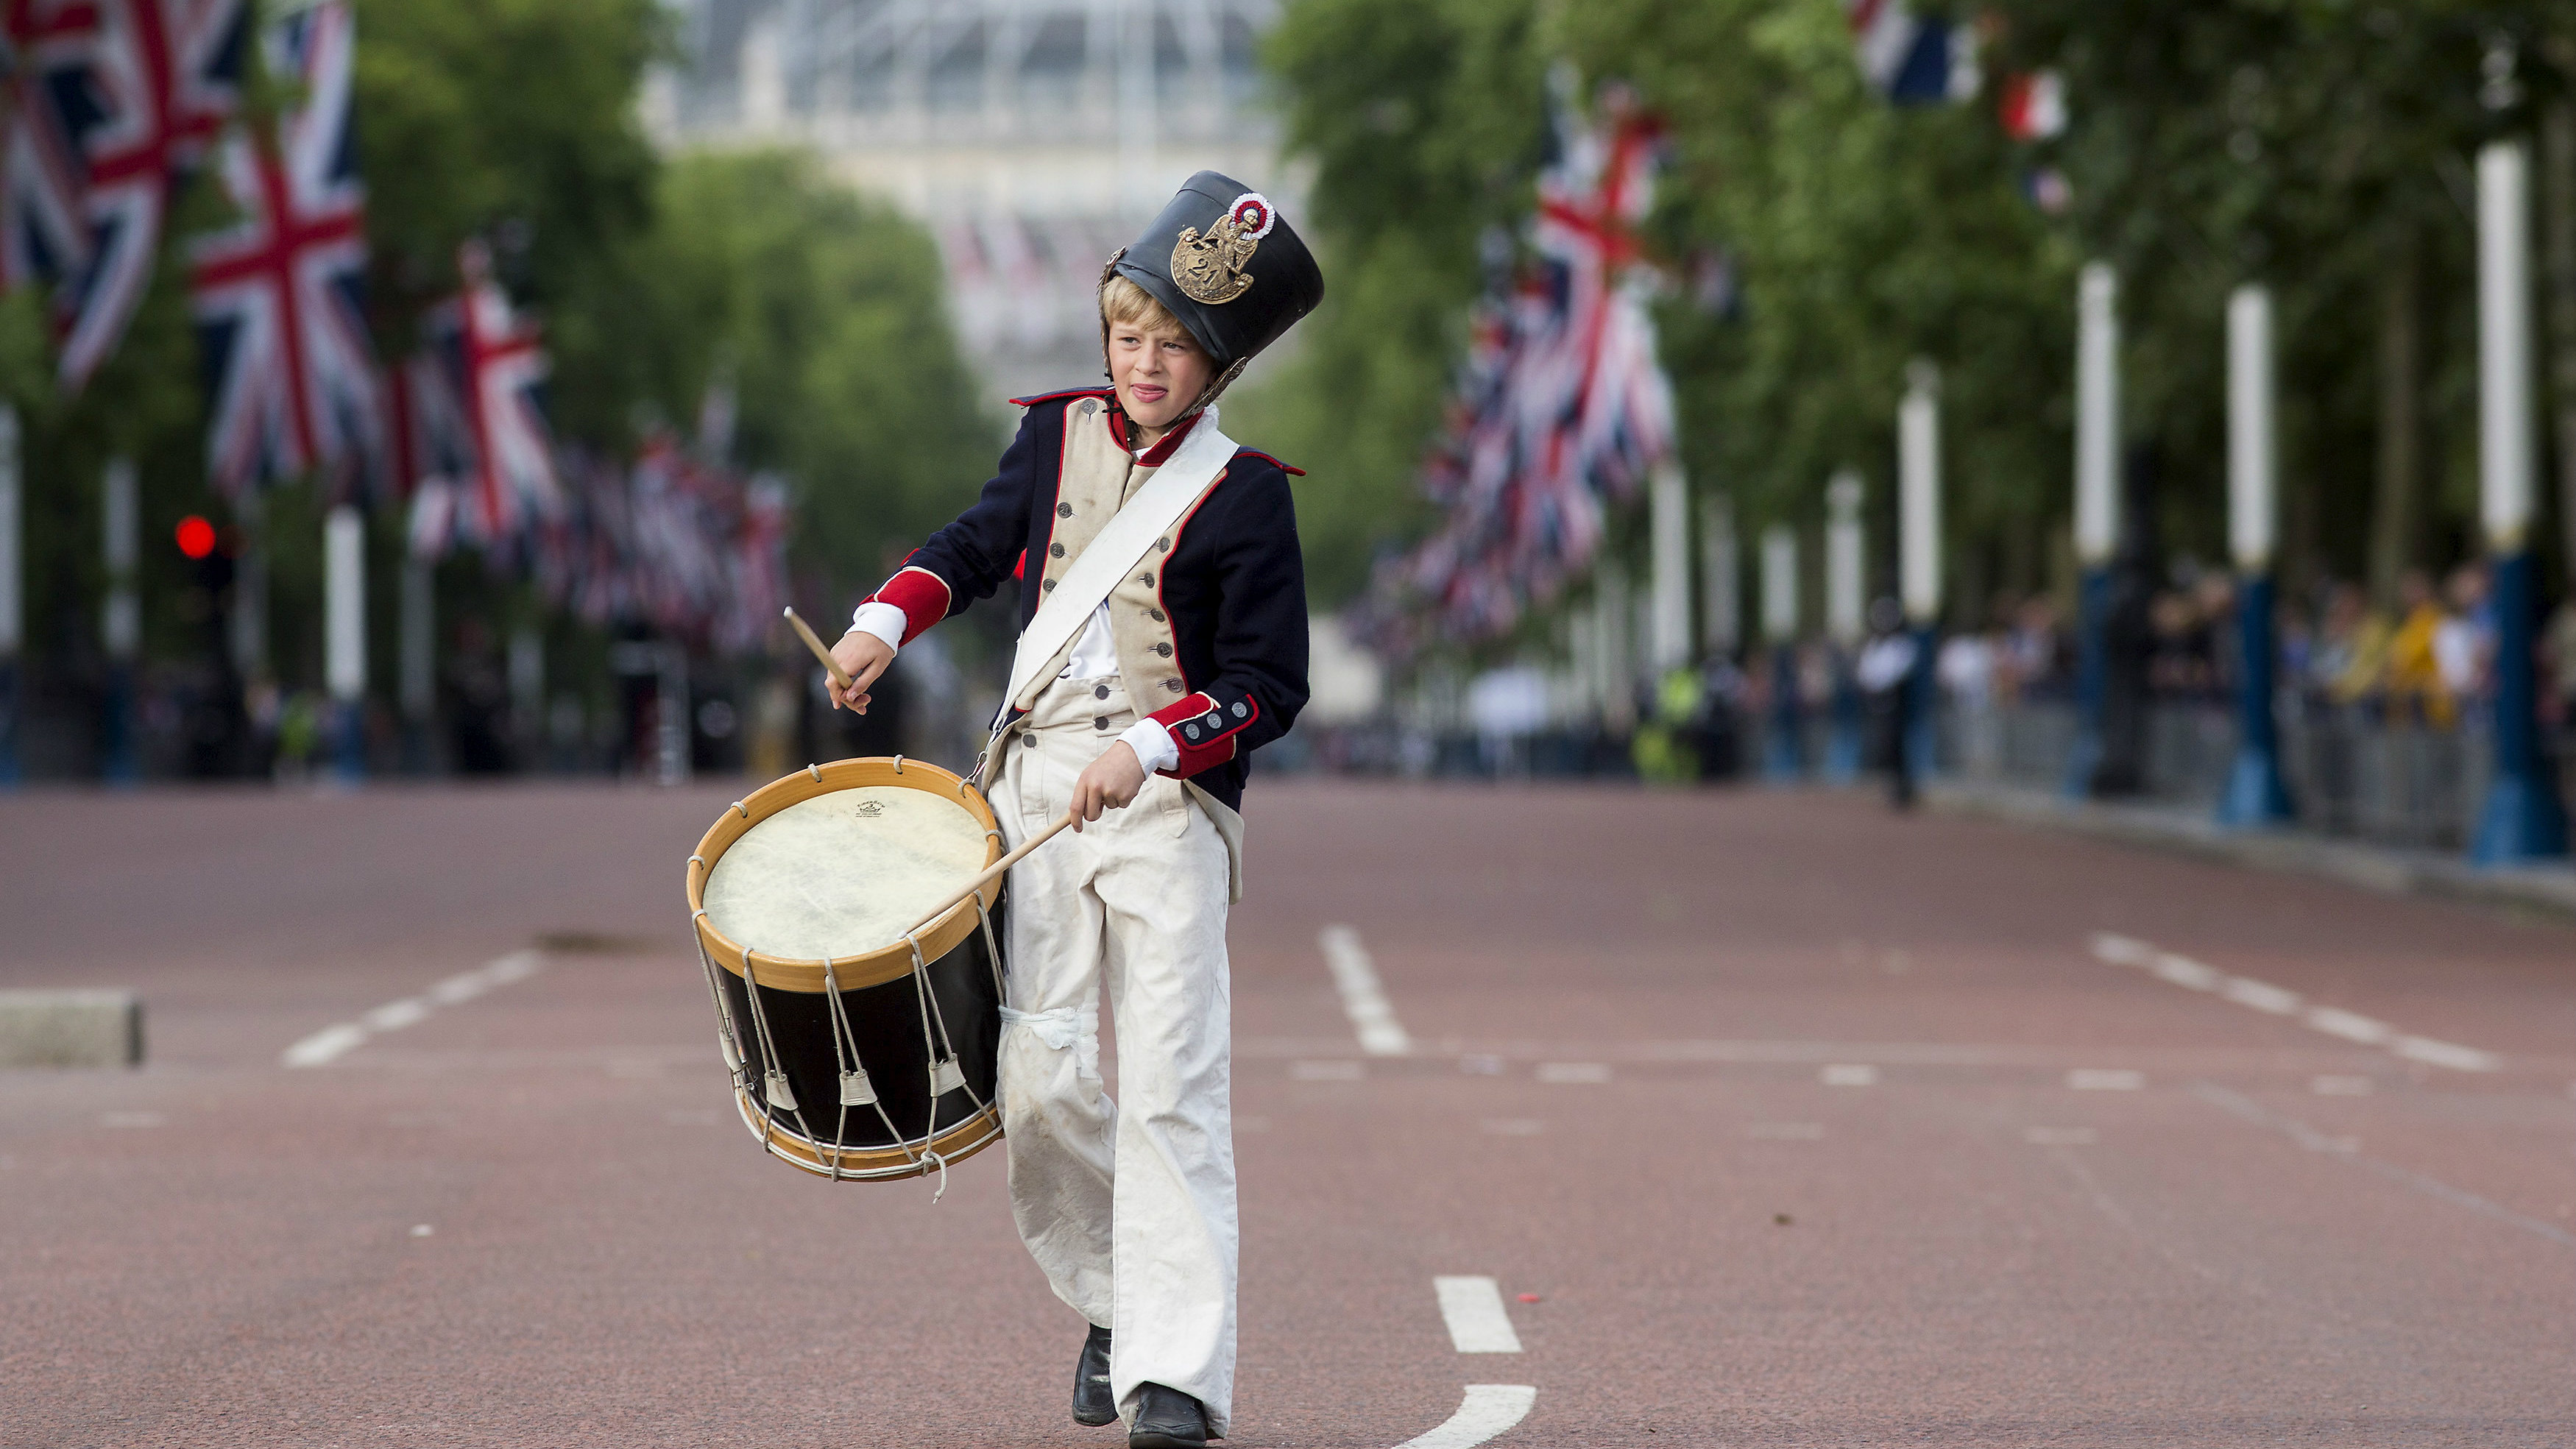 Drummer parades along the mall in London, UK